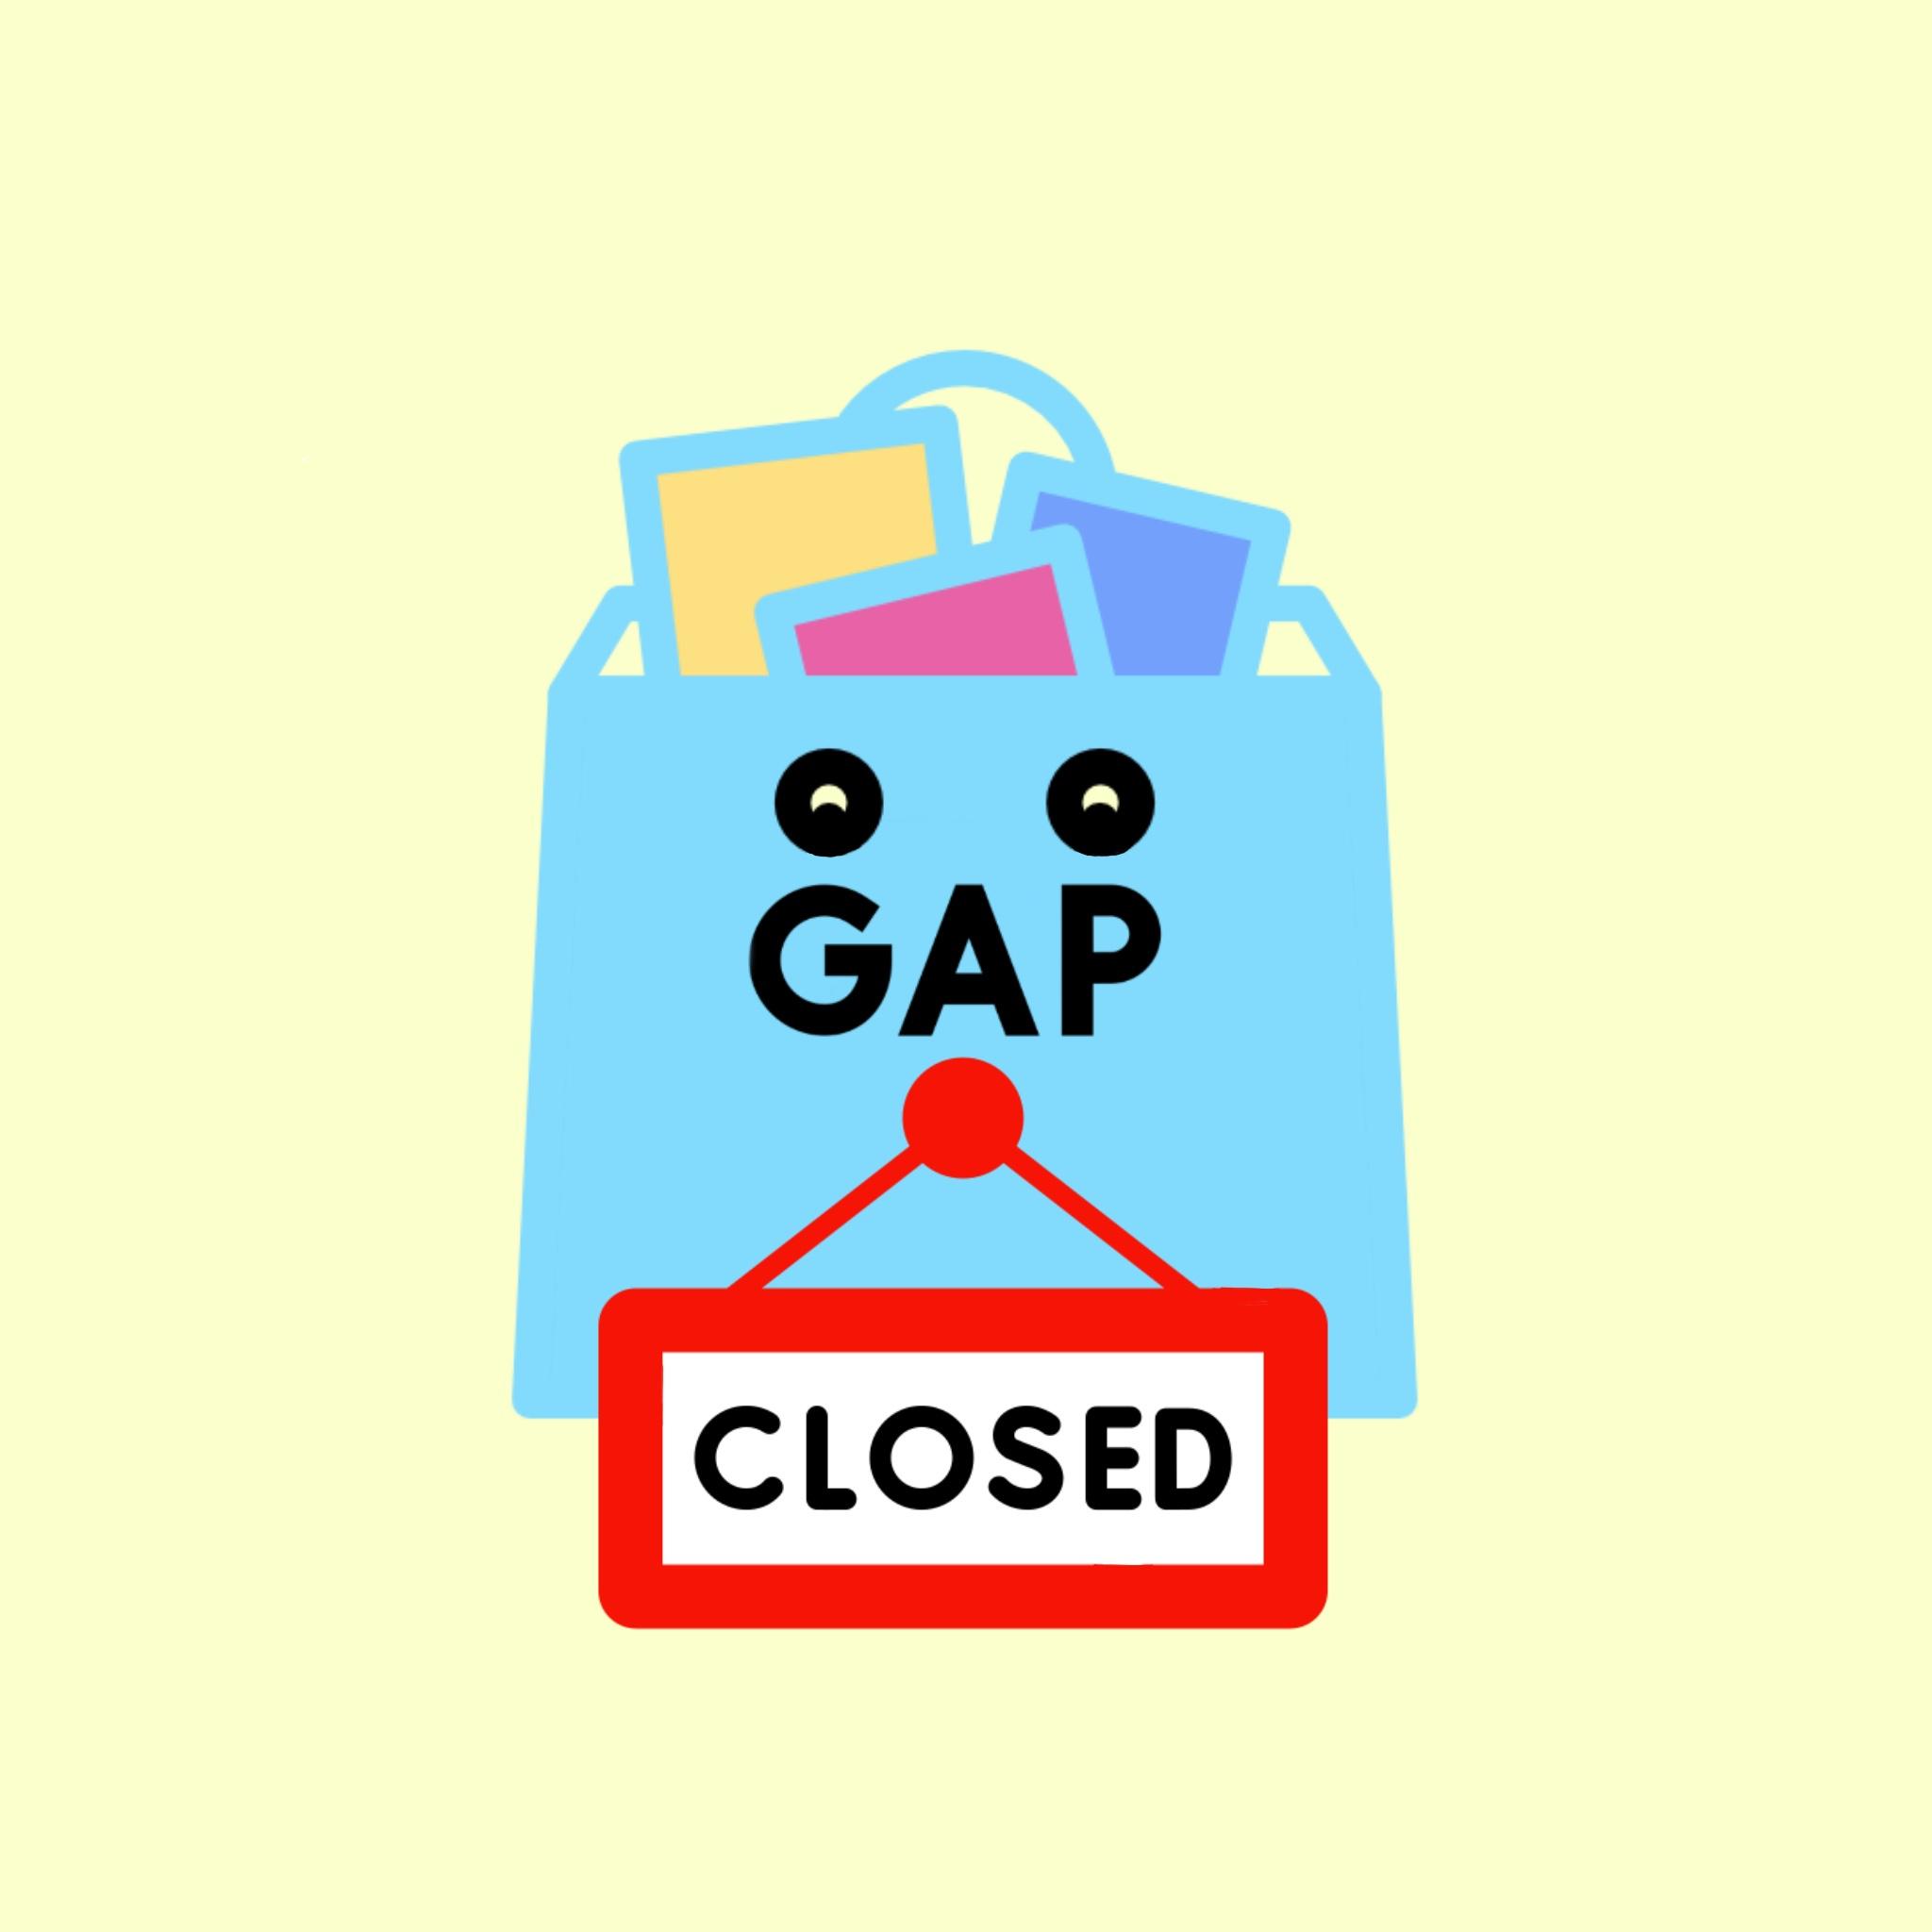 Another Gap in the market: fashion chain Gap to close 19 stores